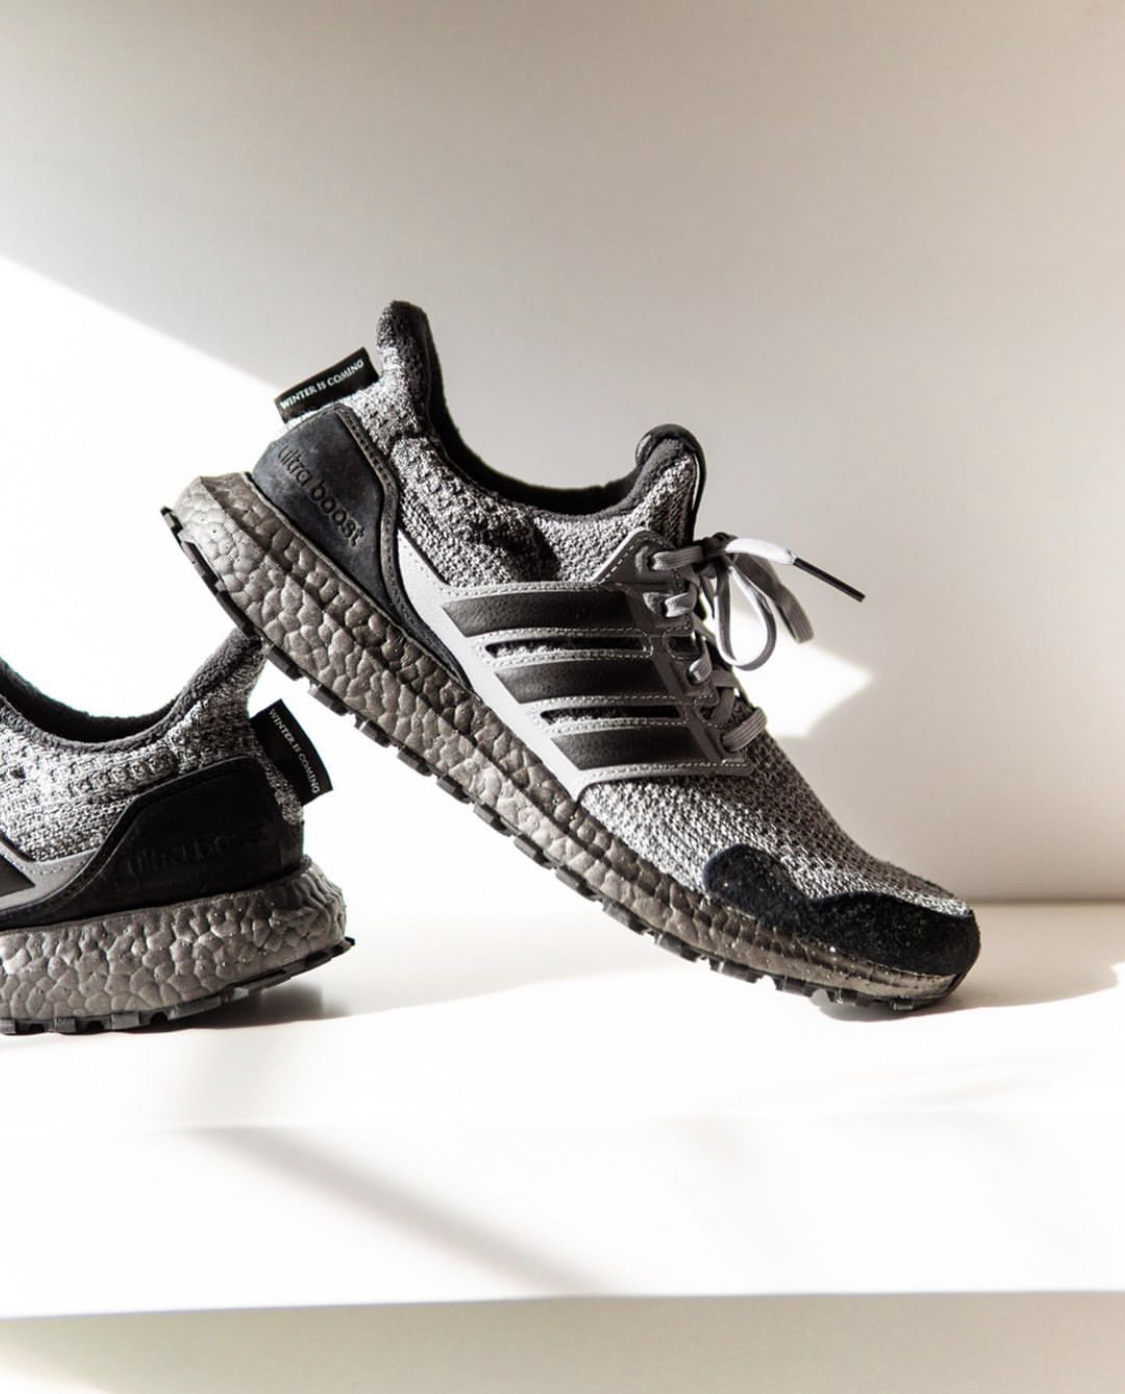 the best attitude 4d647 265e2 Restock: Game of Thrones x adidas UltraBOOST